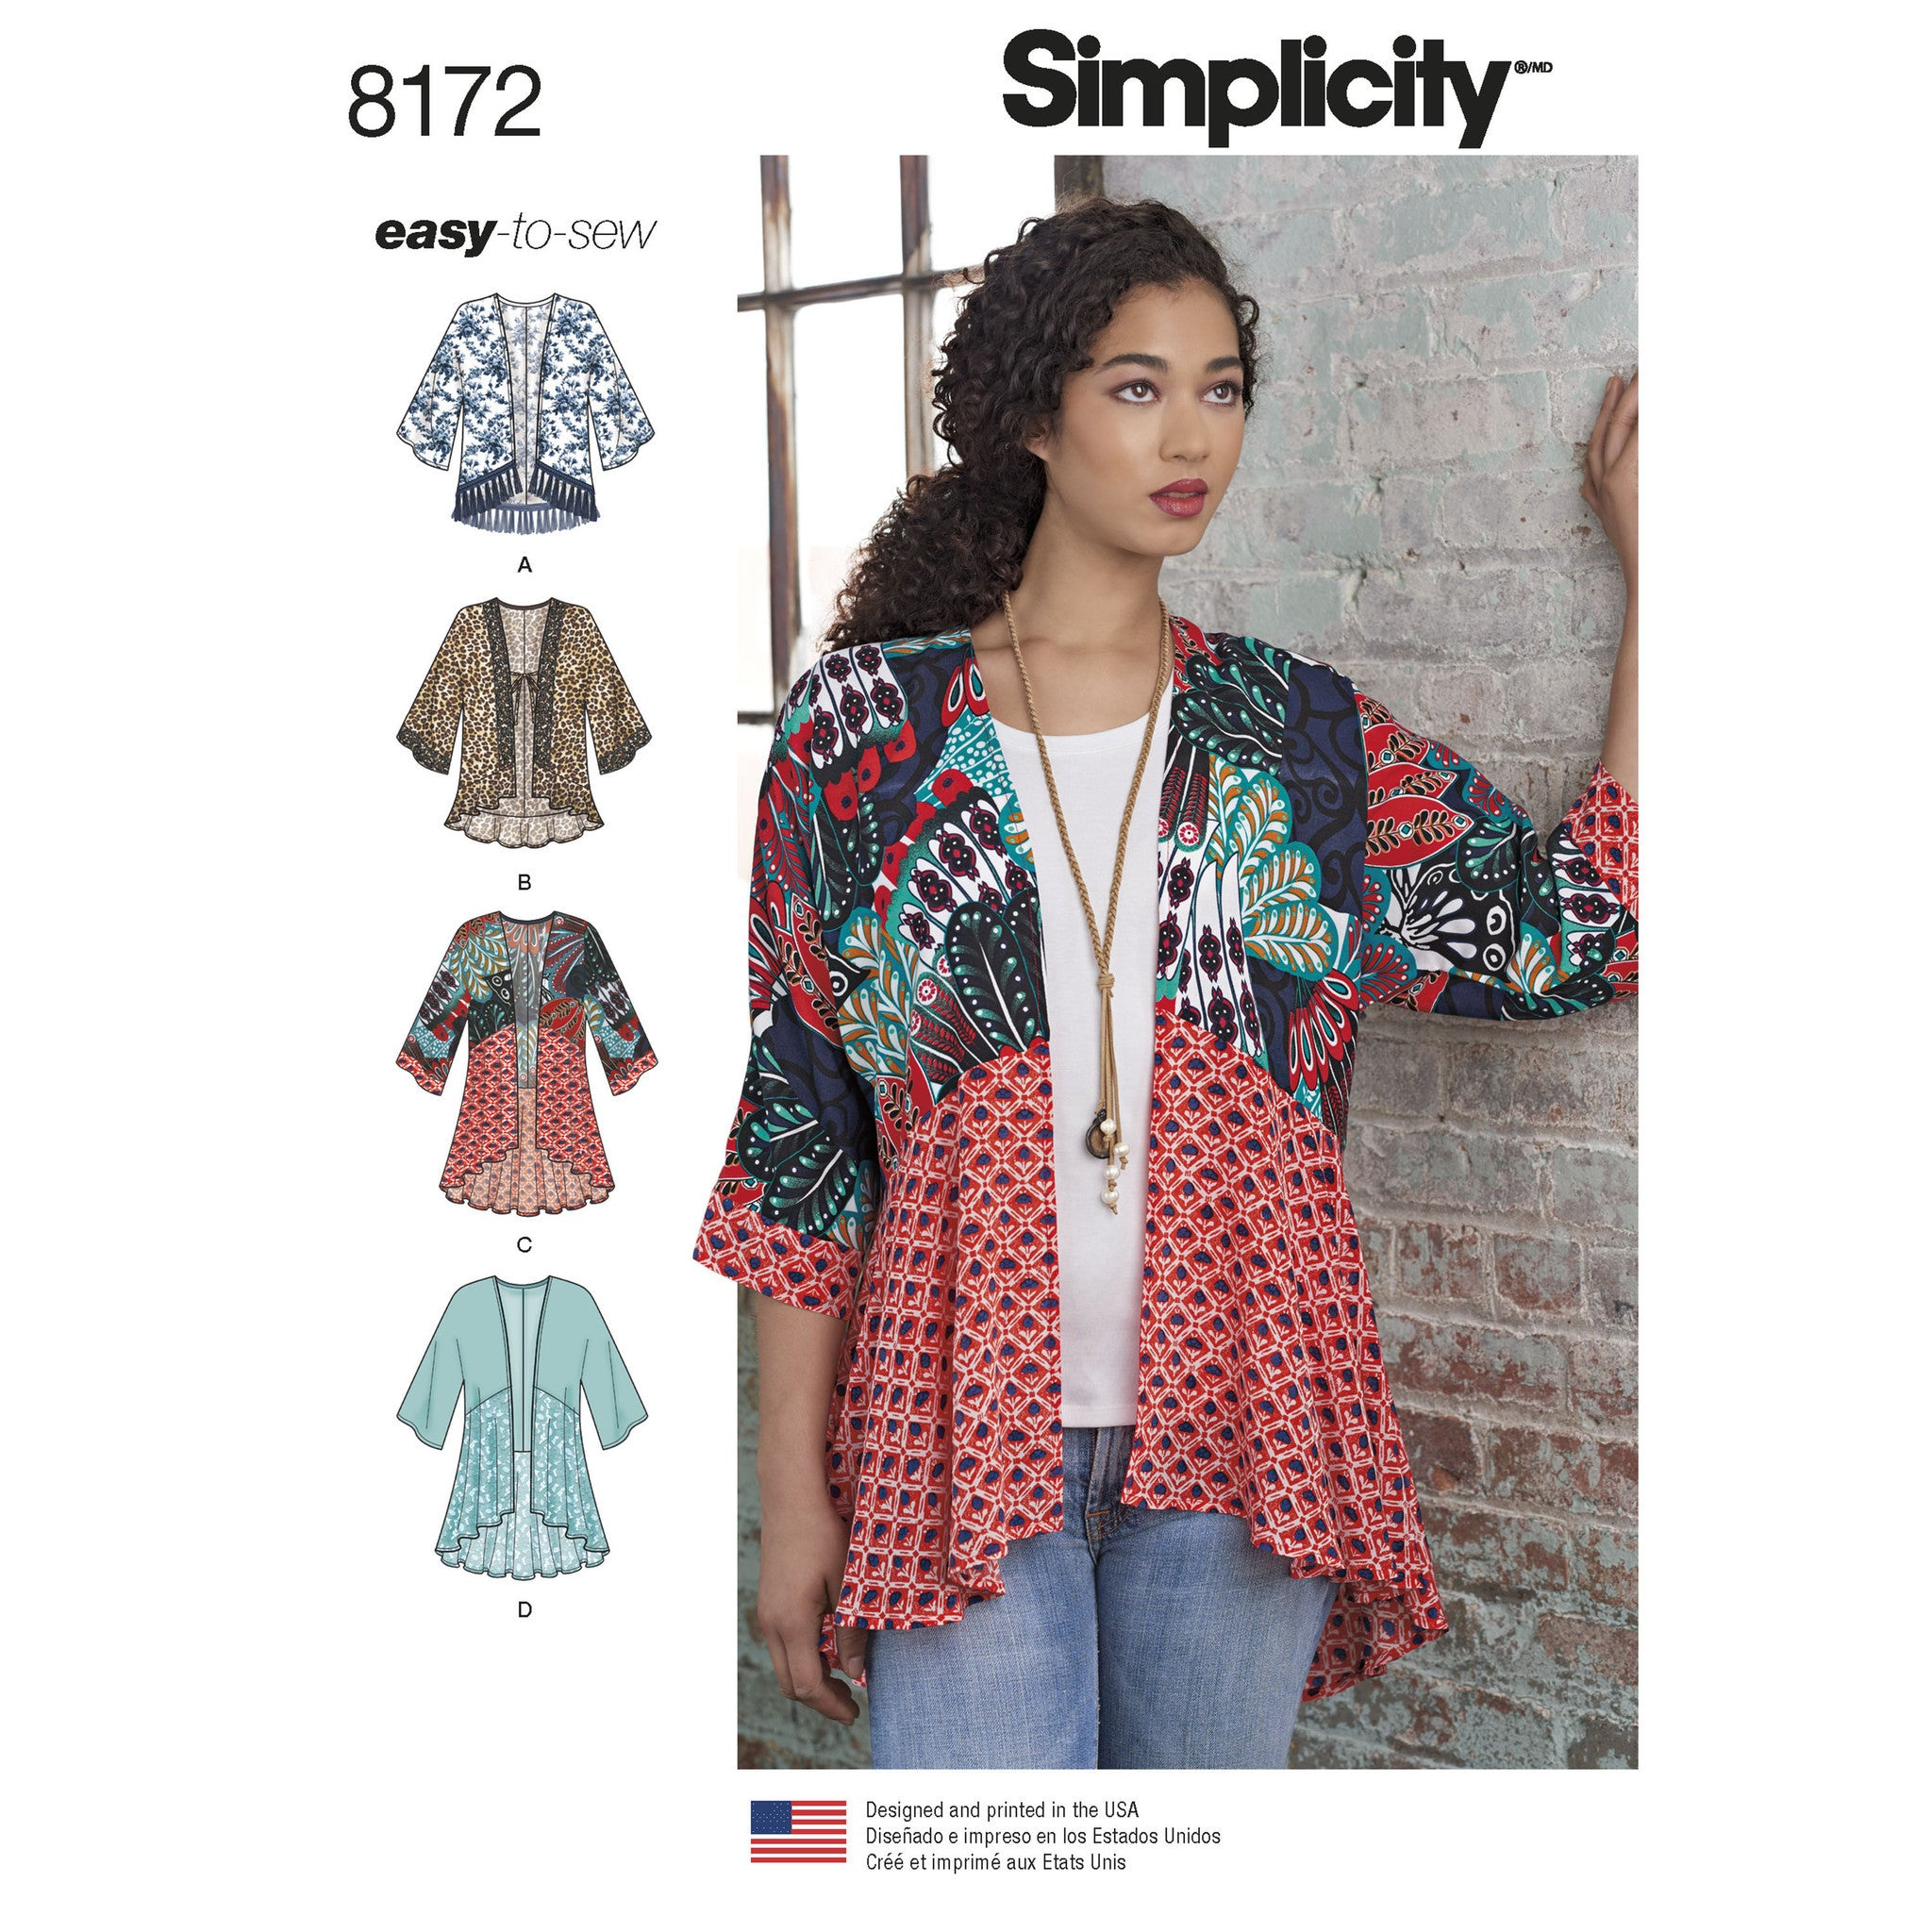 S8172 Fashion Kimonos with Length, Fabric and Trim Variations